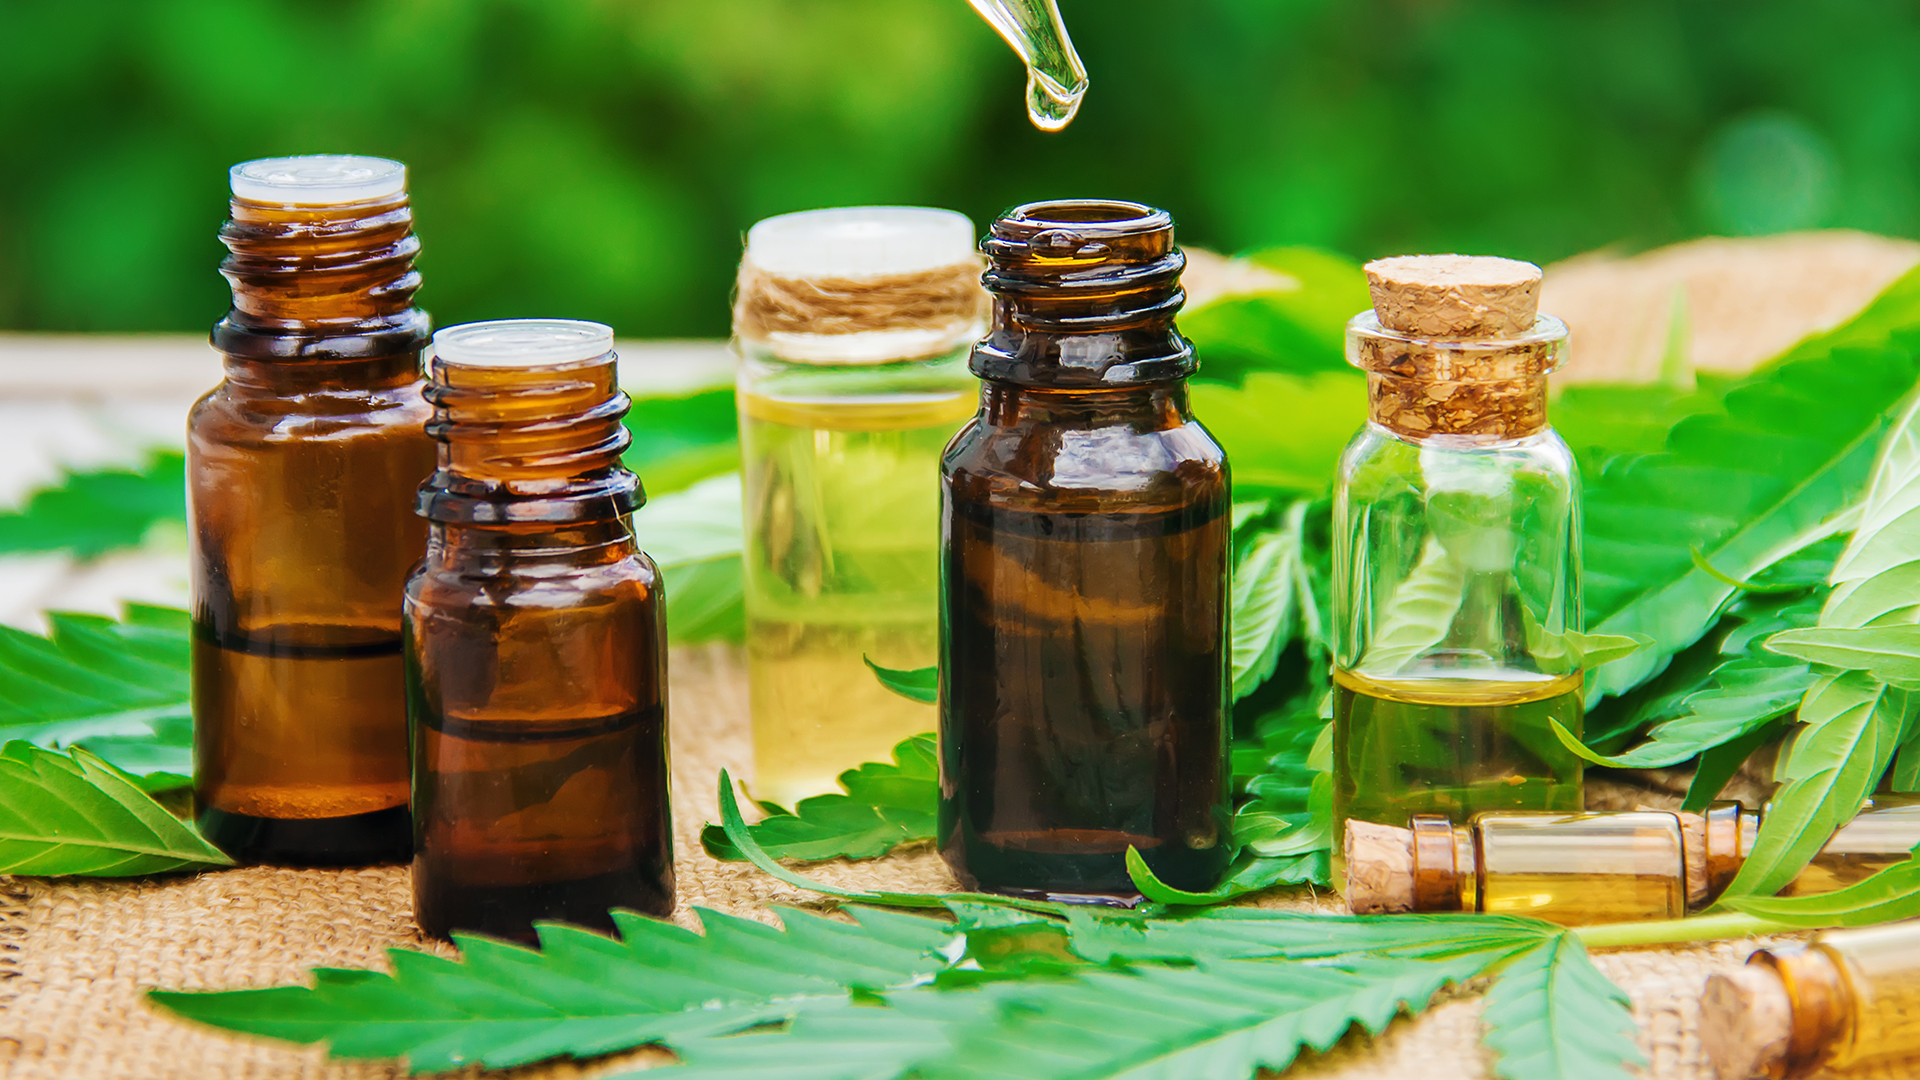 Can CBD oil or hemp oil provide health help without the high? Atrium Health's experts weigh in.